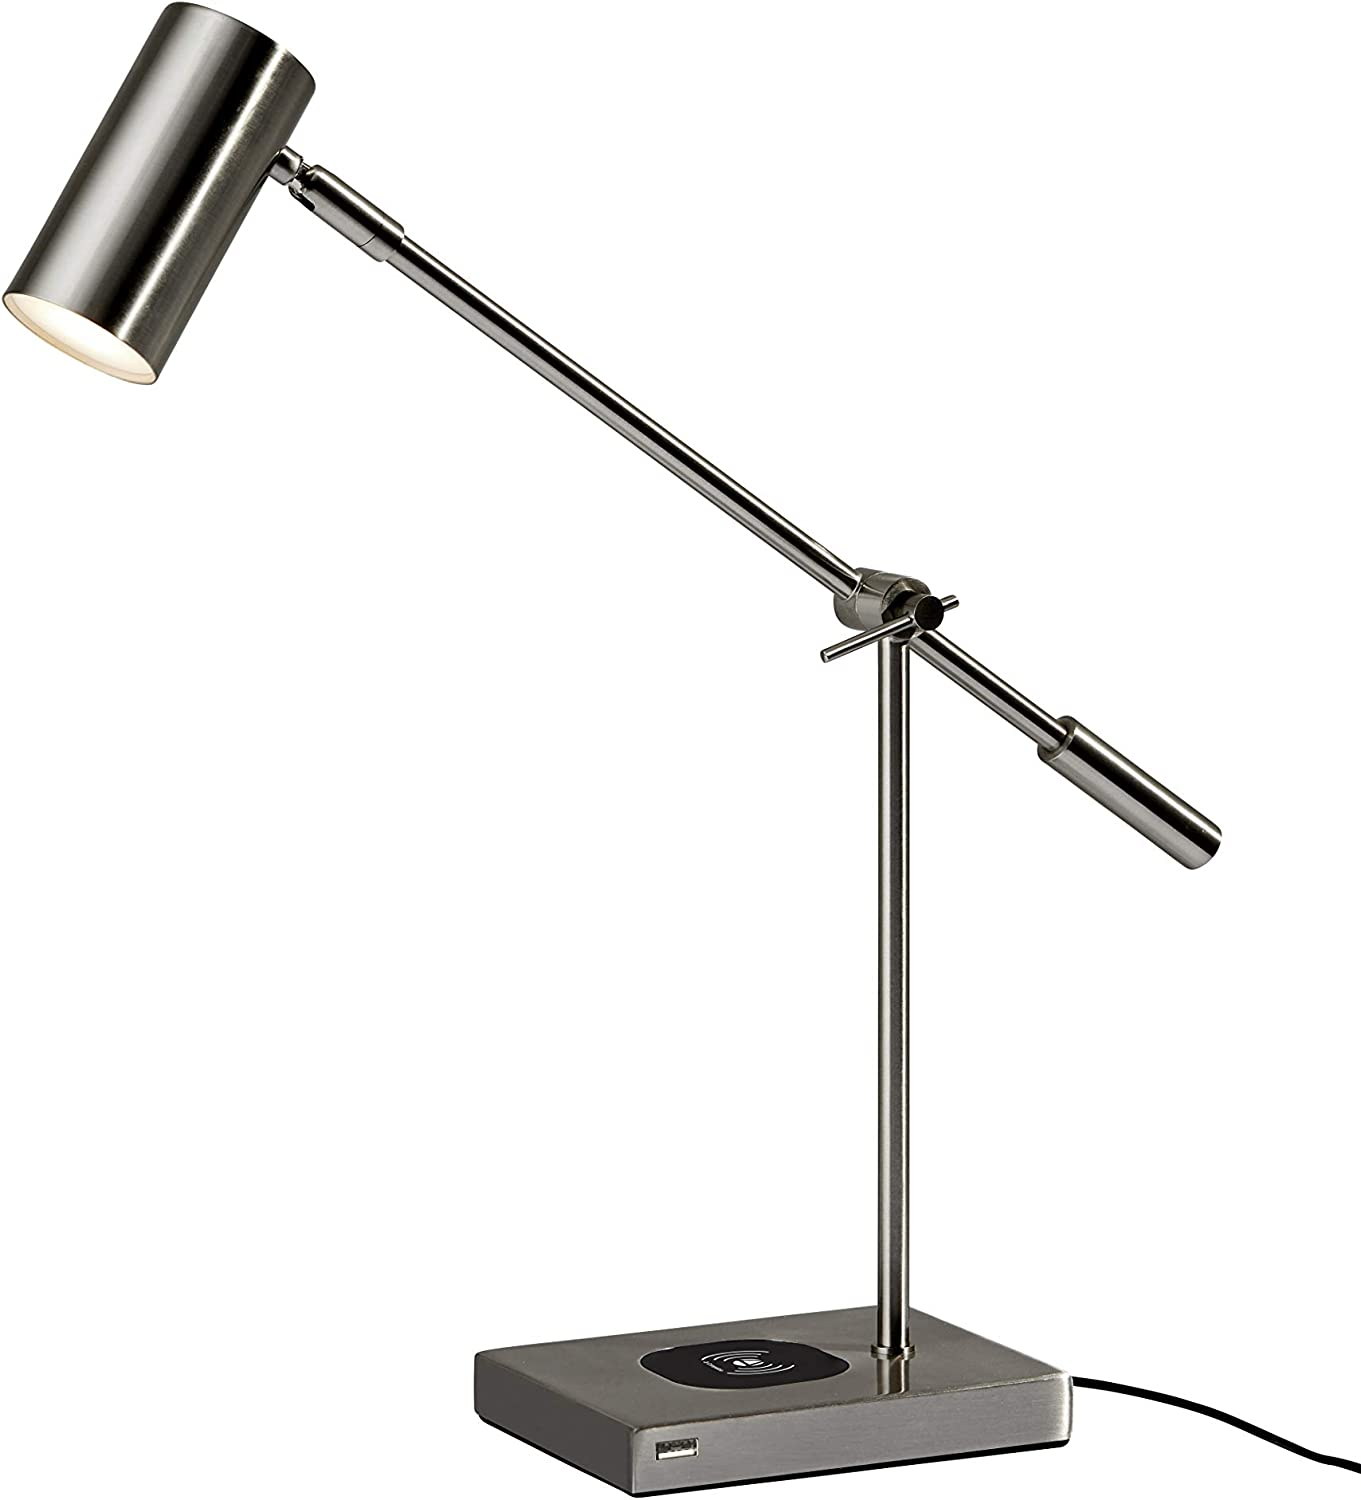 Adesso 4217-22 Collette?LED Desk Lamp Wireless?Charging, 7W LED, 5W QI,?USB Port, Indoor Lighting Lamps